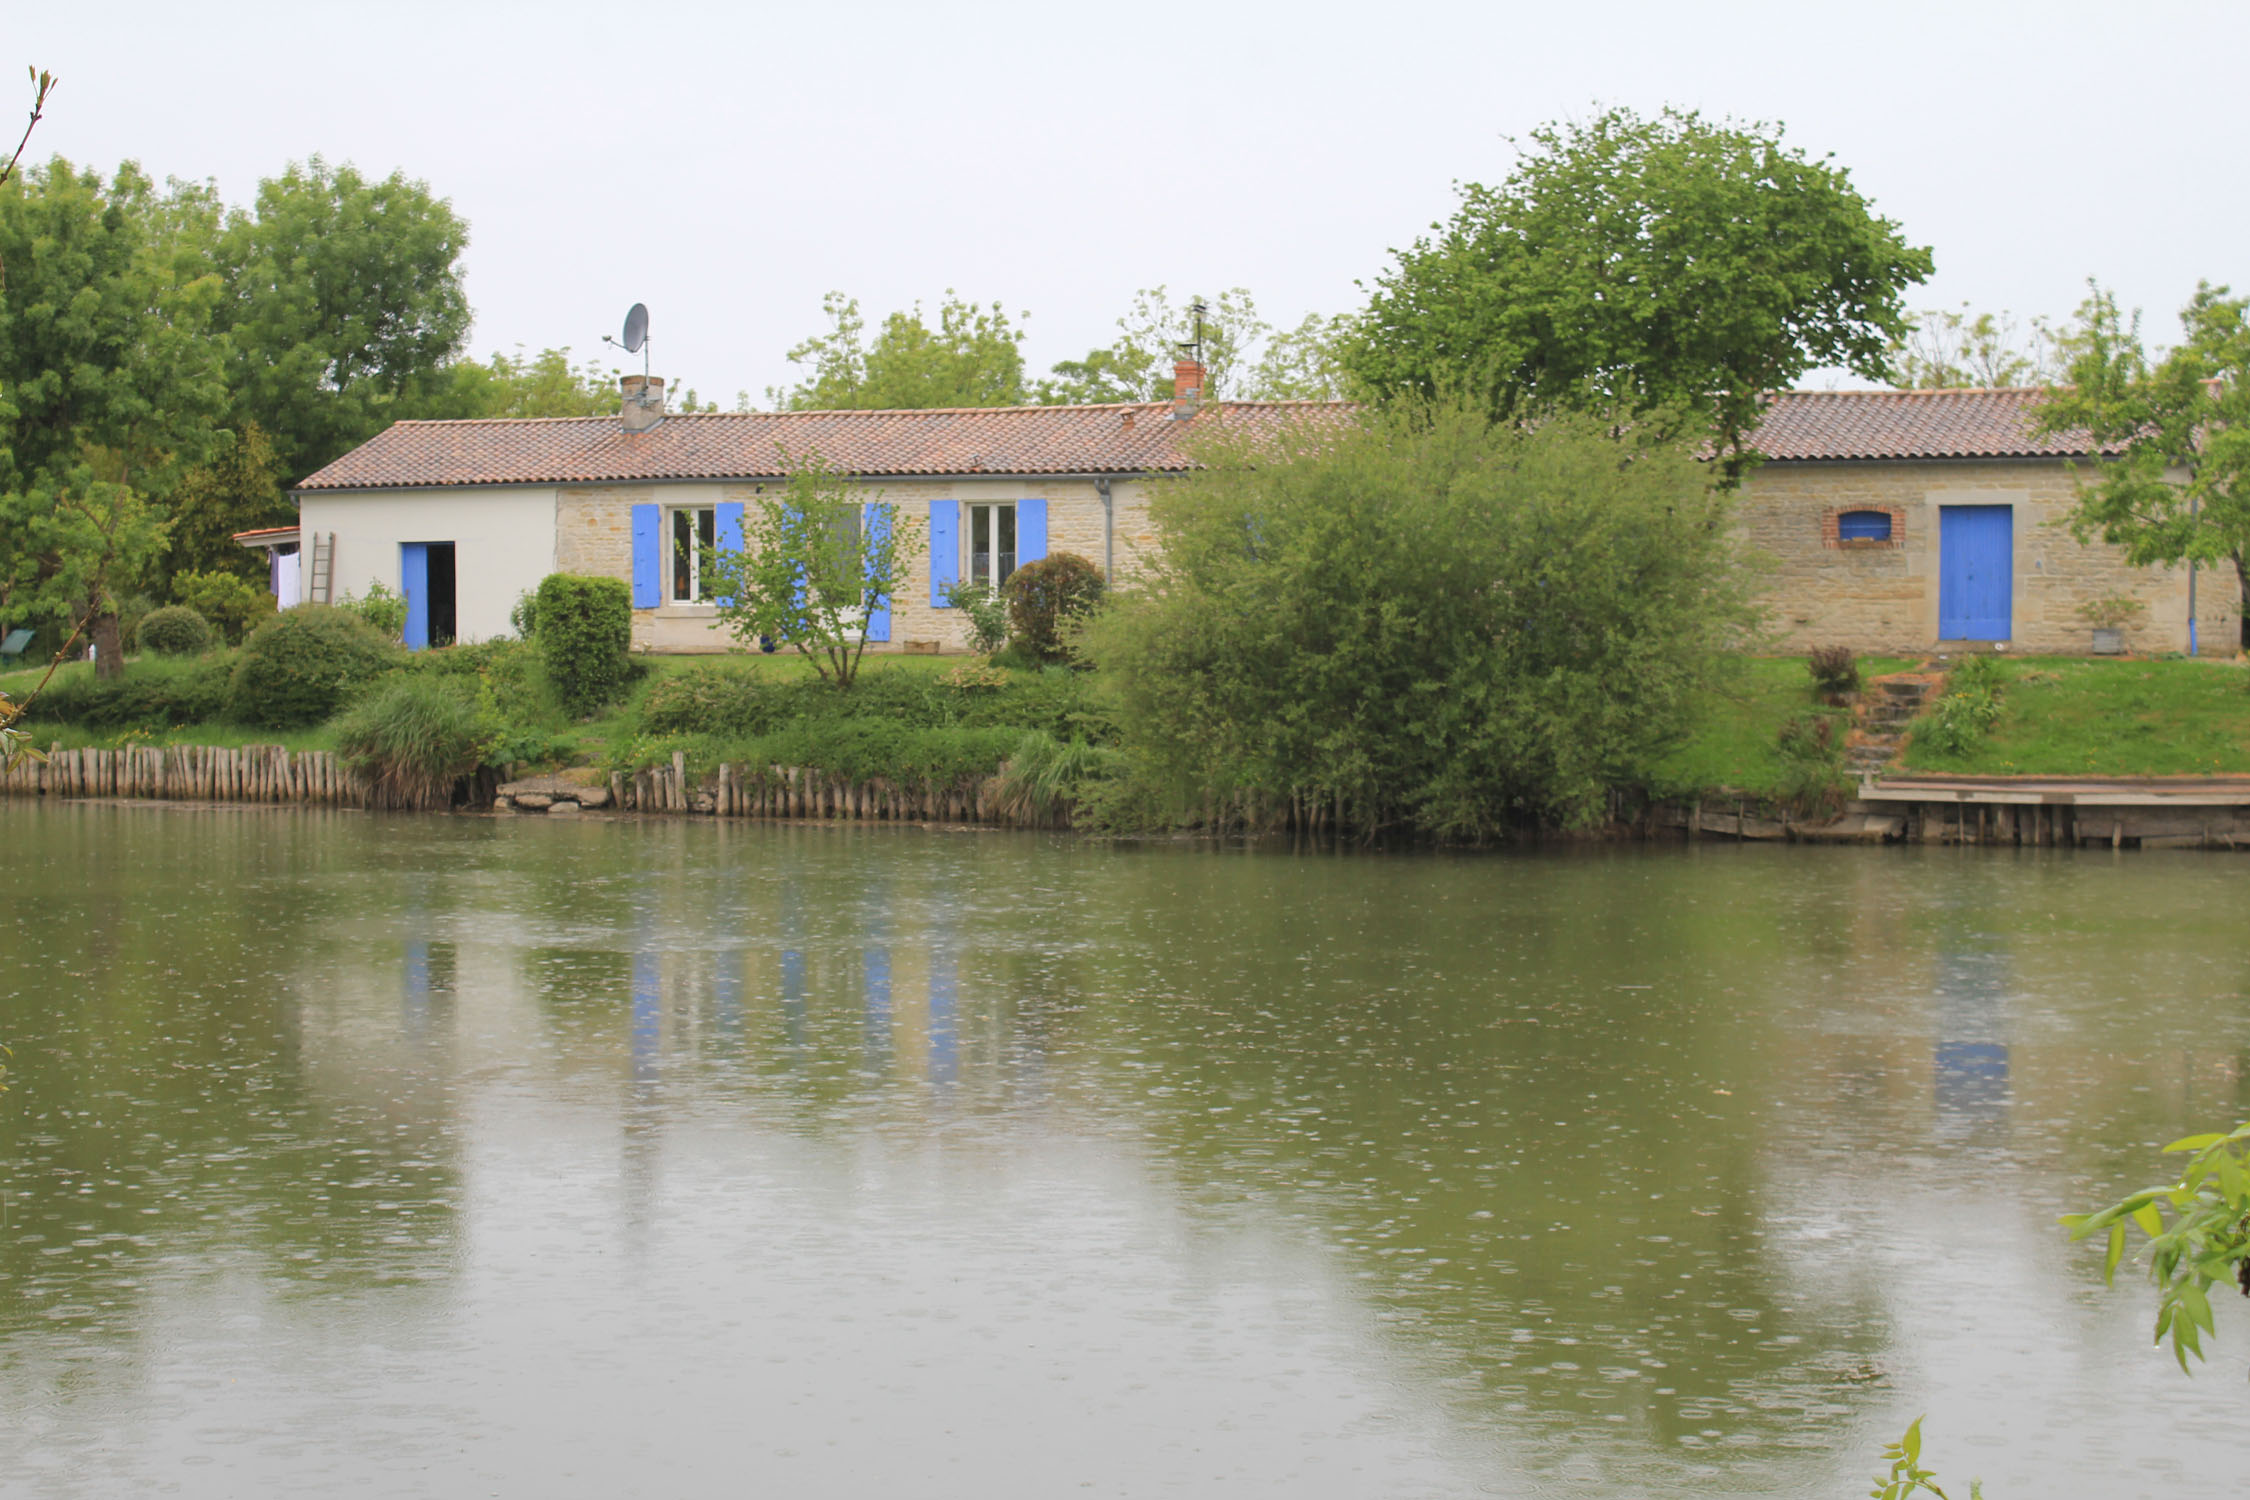 Poitevin marsh, traditional house